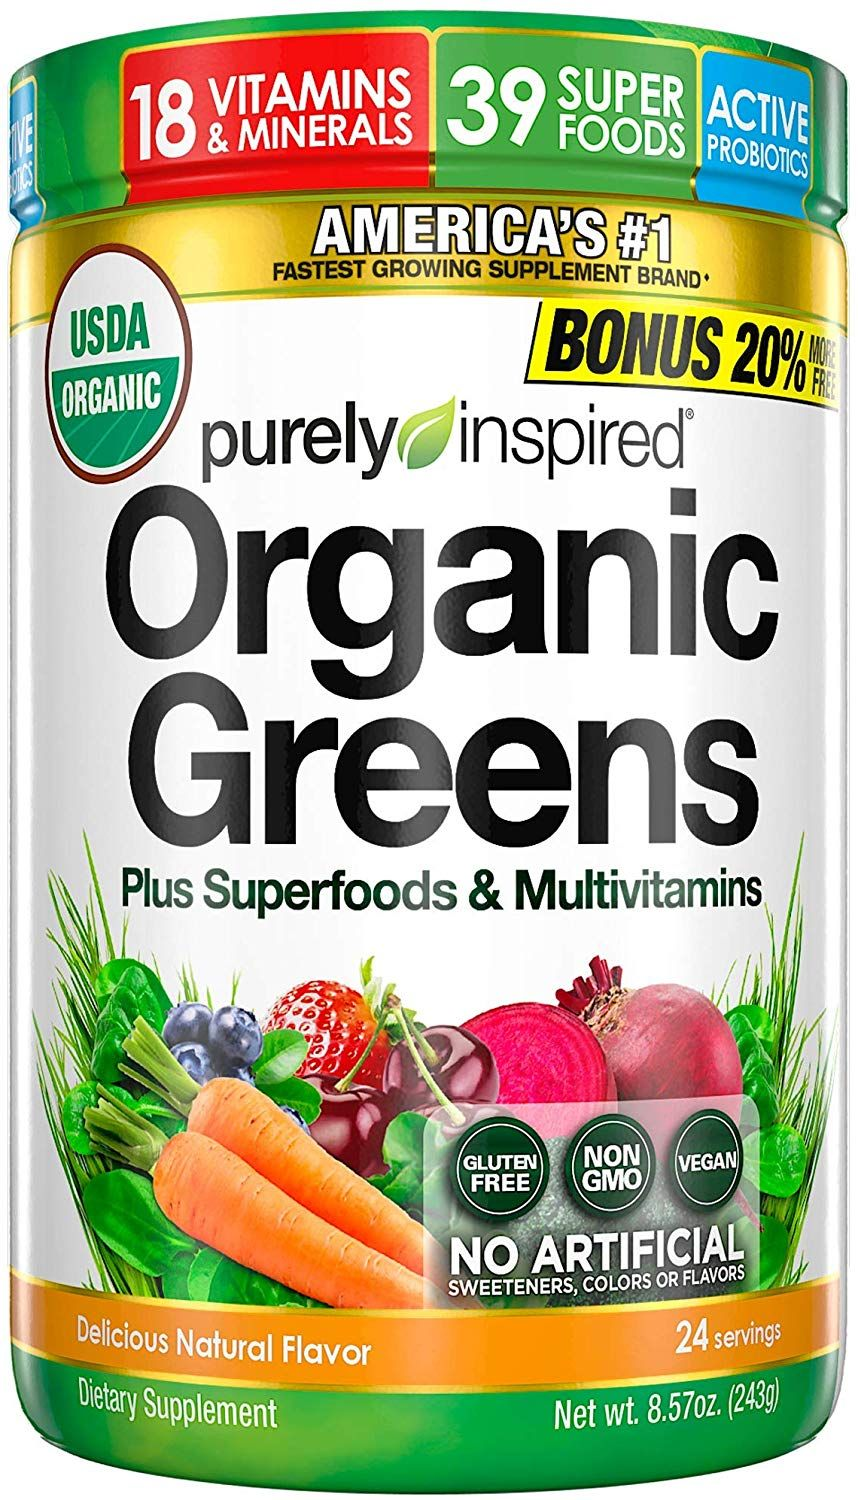 Purely Inspired Organic Super Greens Powder With Superfoods Multivitamins In 2020 Super Greens Powder Organic Greens Powder Super Greens